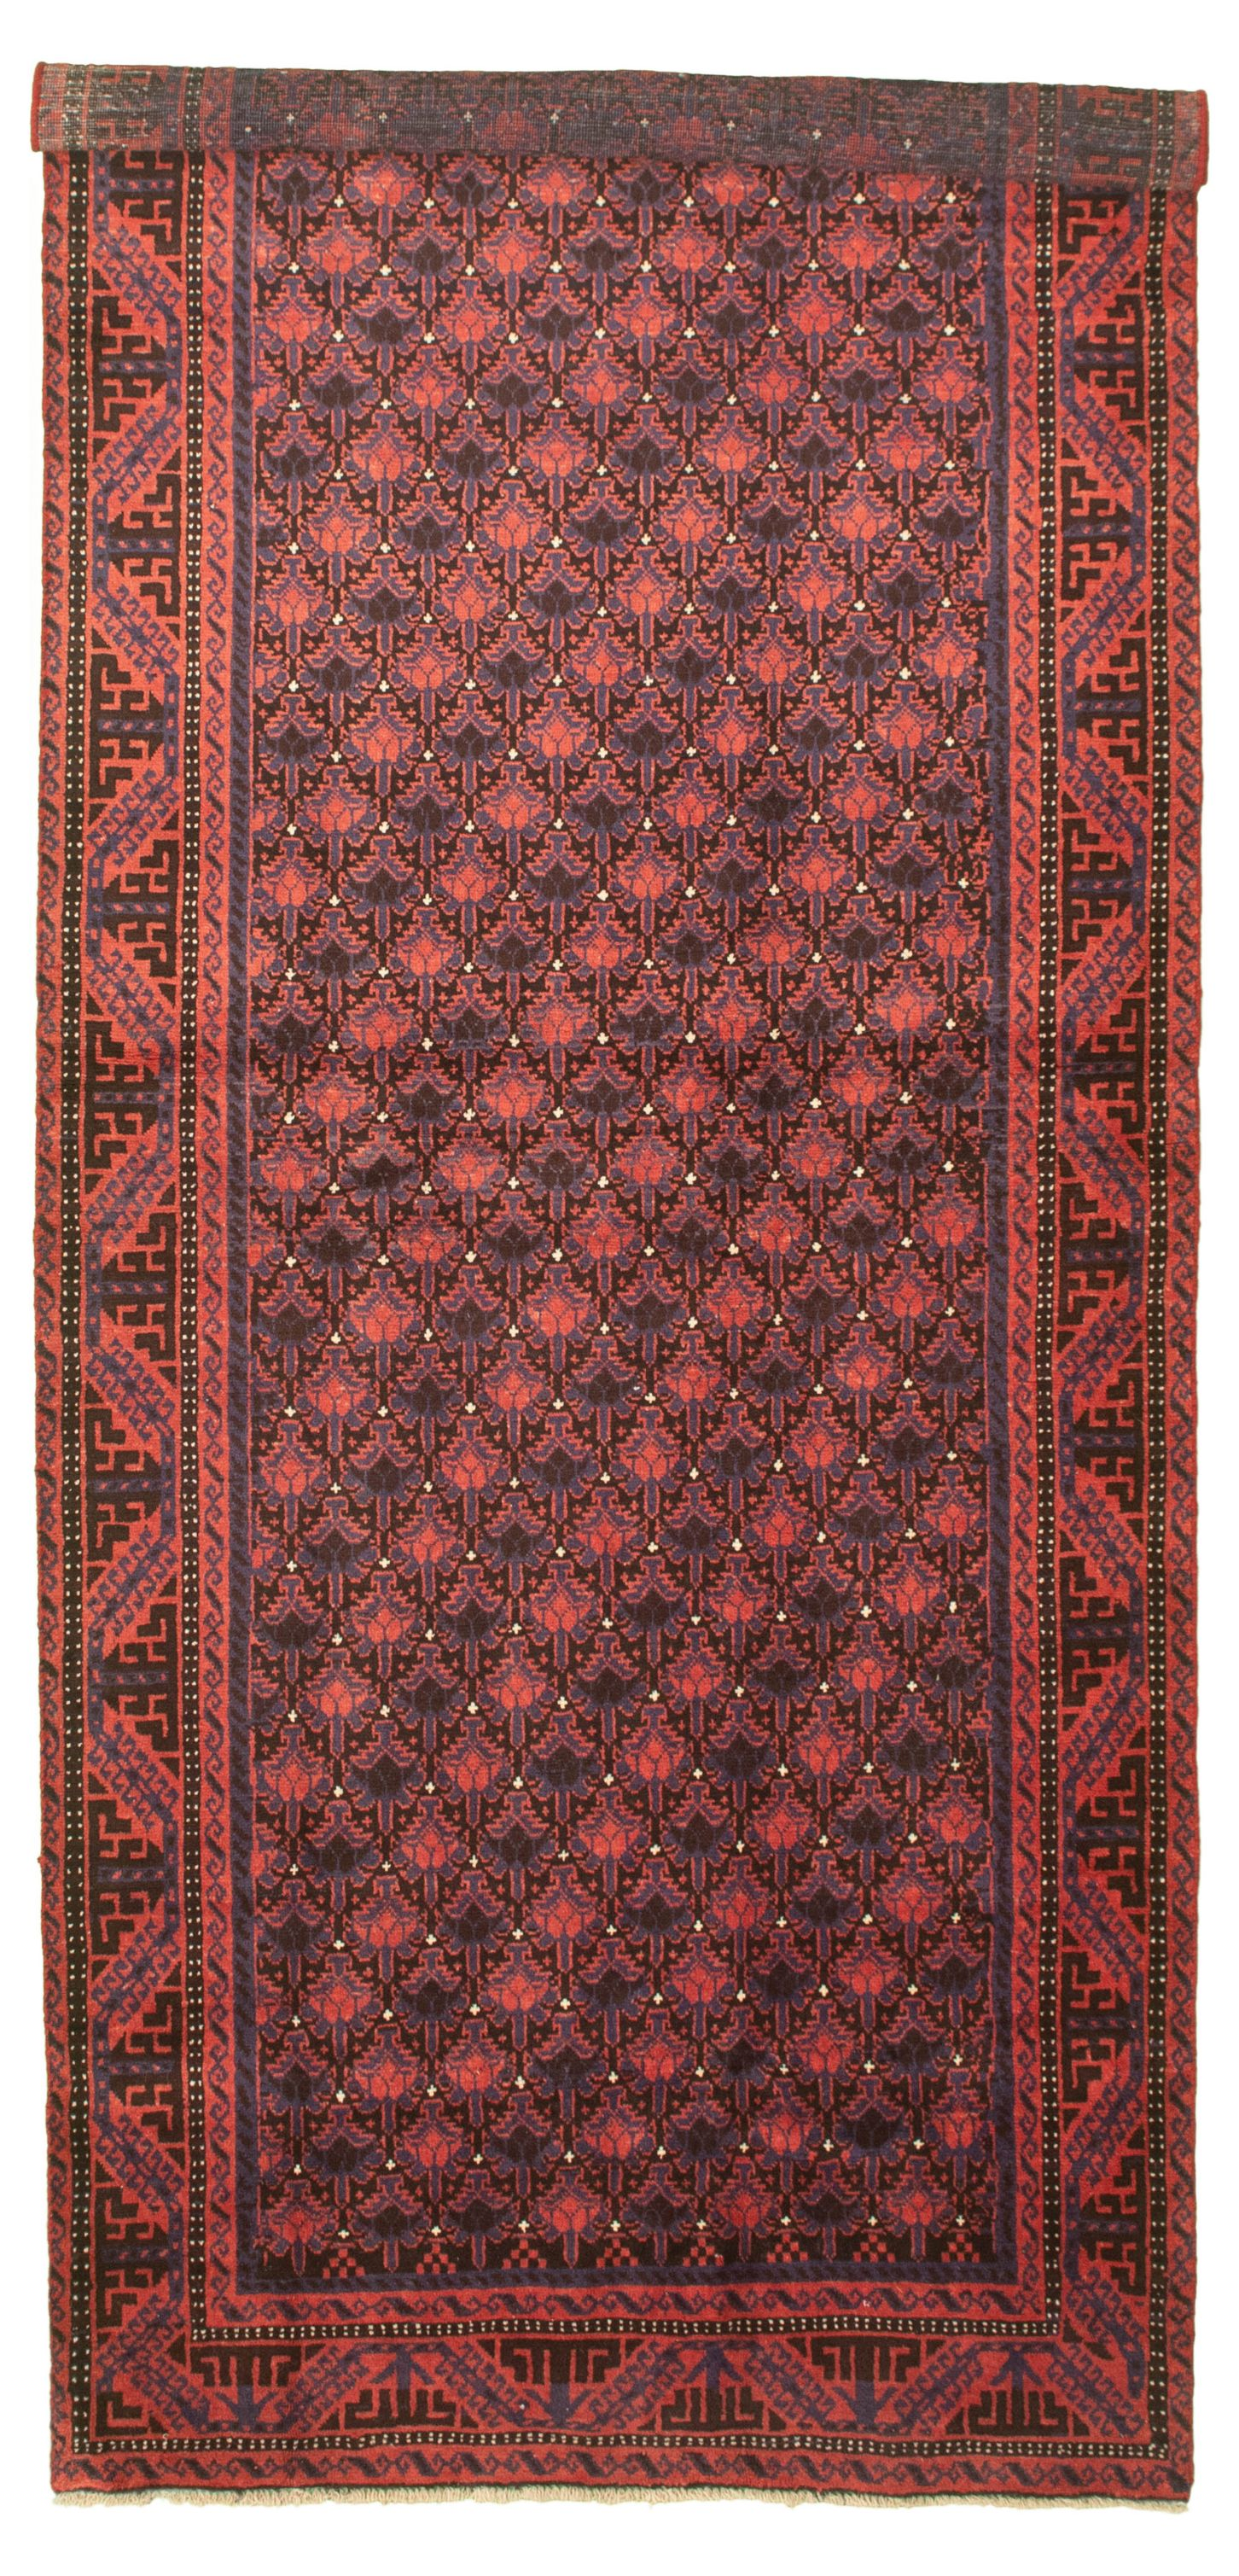 "Hand-knotted Authentic Turkish Red Wool Rug 4'1"" x 10'4"" Size: 4'1"" x 10'4"""